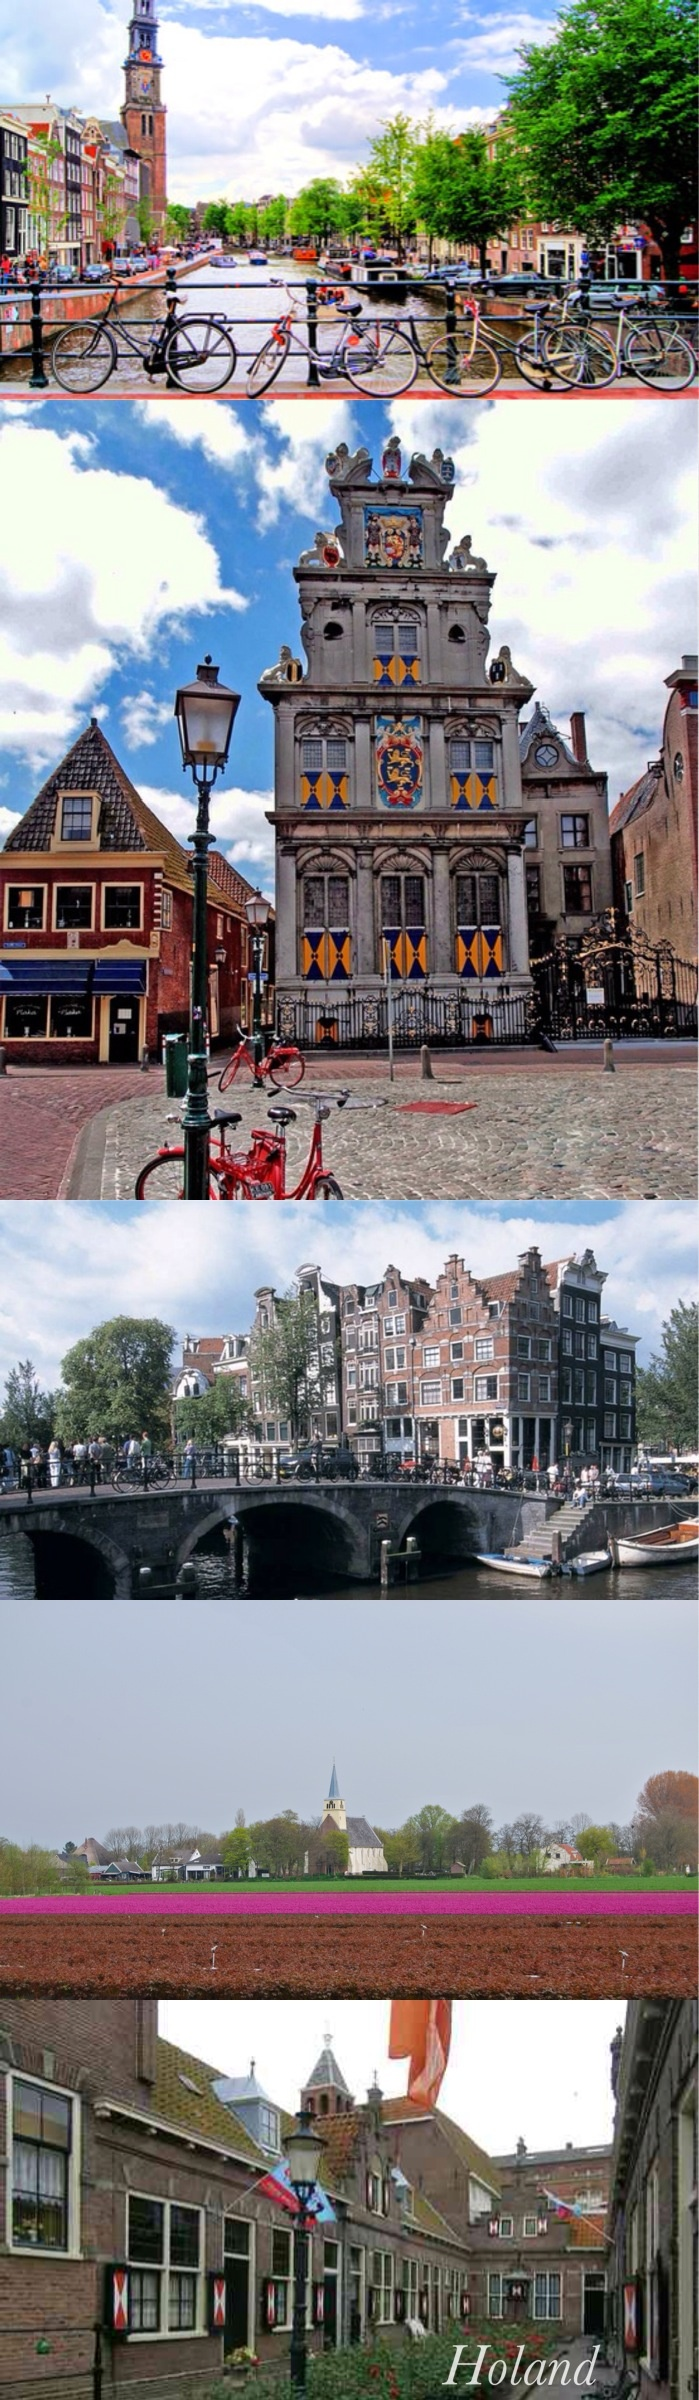 Hoorn is buzzing! This historic city with its unique waterside location is a living monument. Over the years Hoorn has retained its international character.